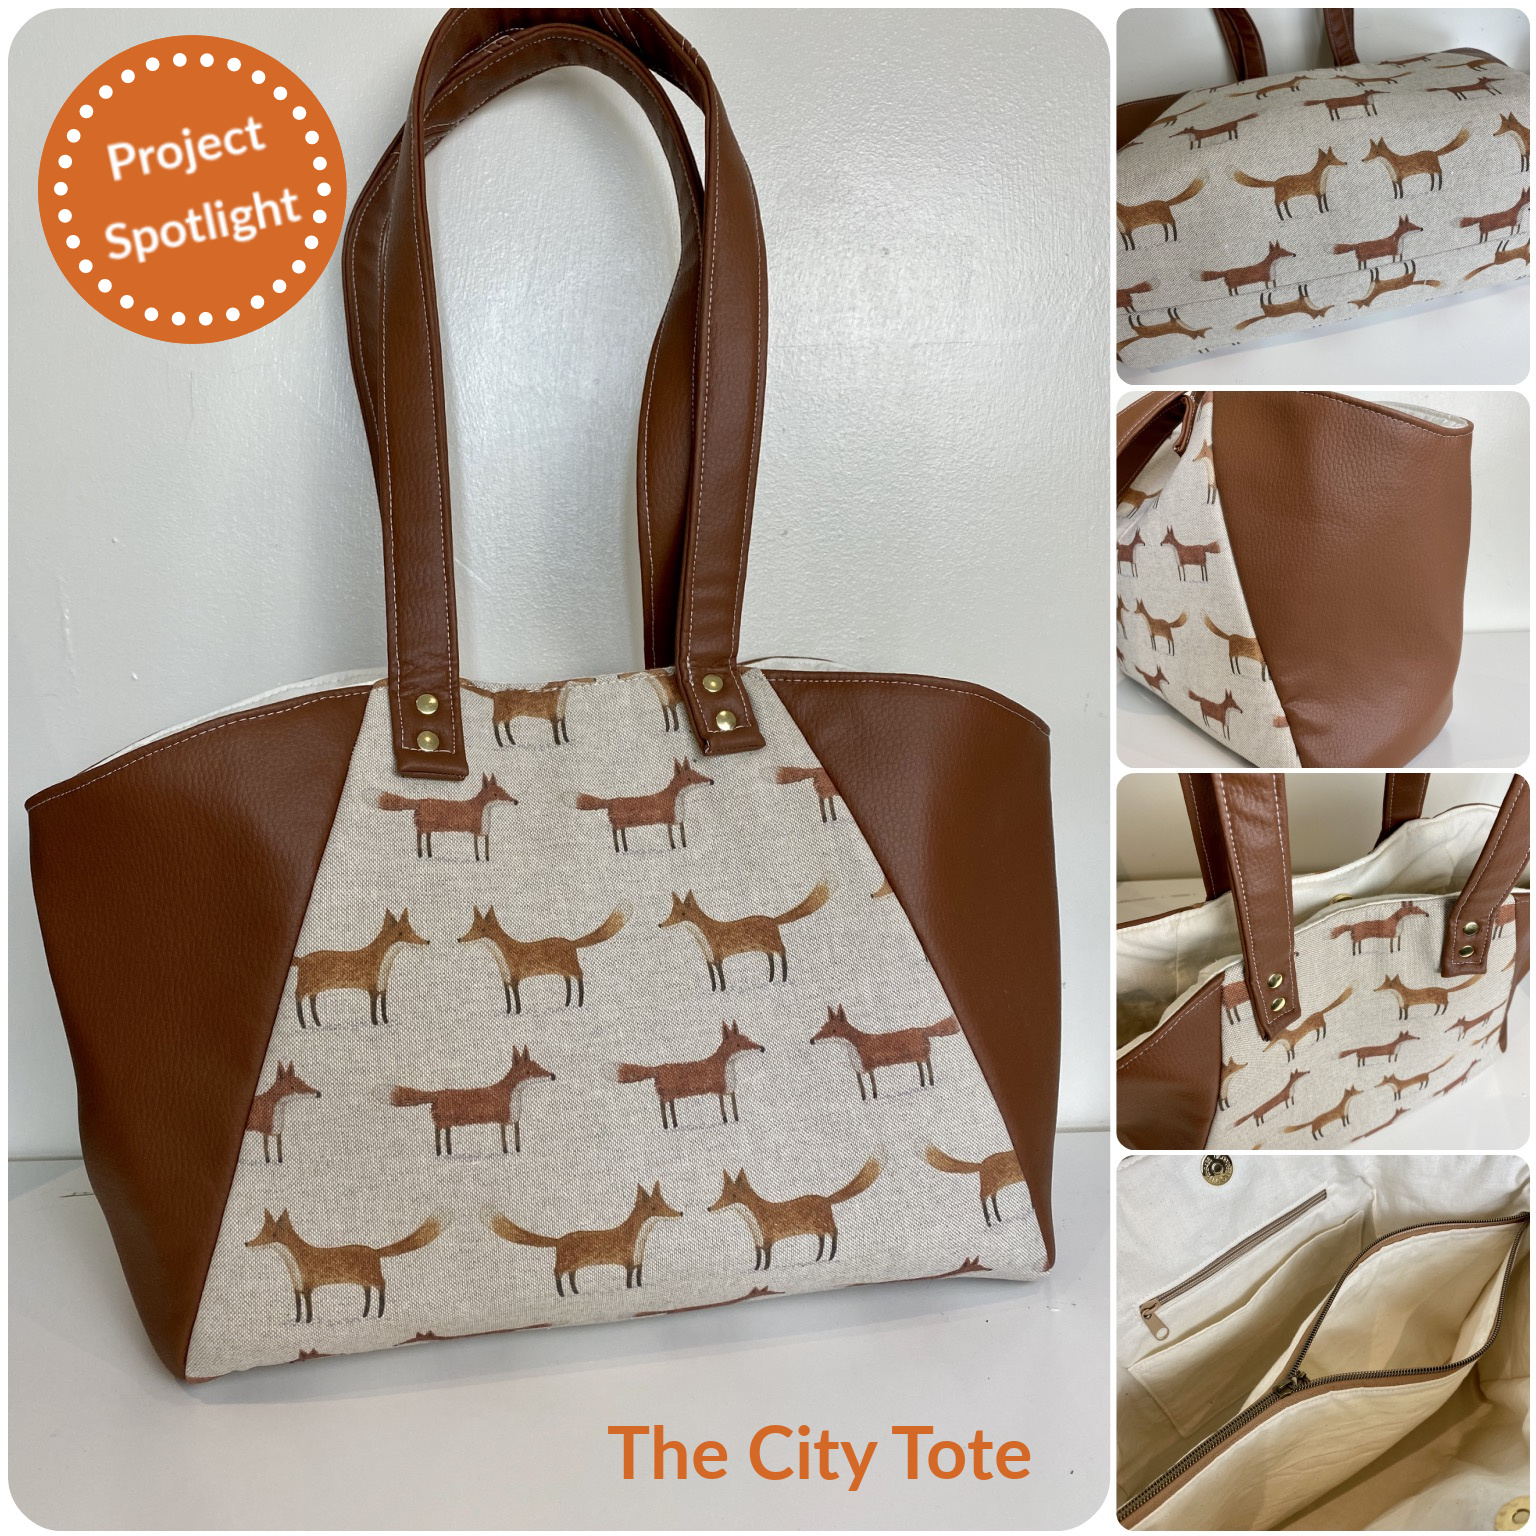 The City Tote from The Complete Bag Making Masterclass, made by Laura Simons